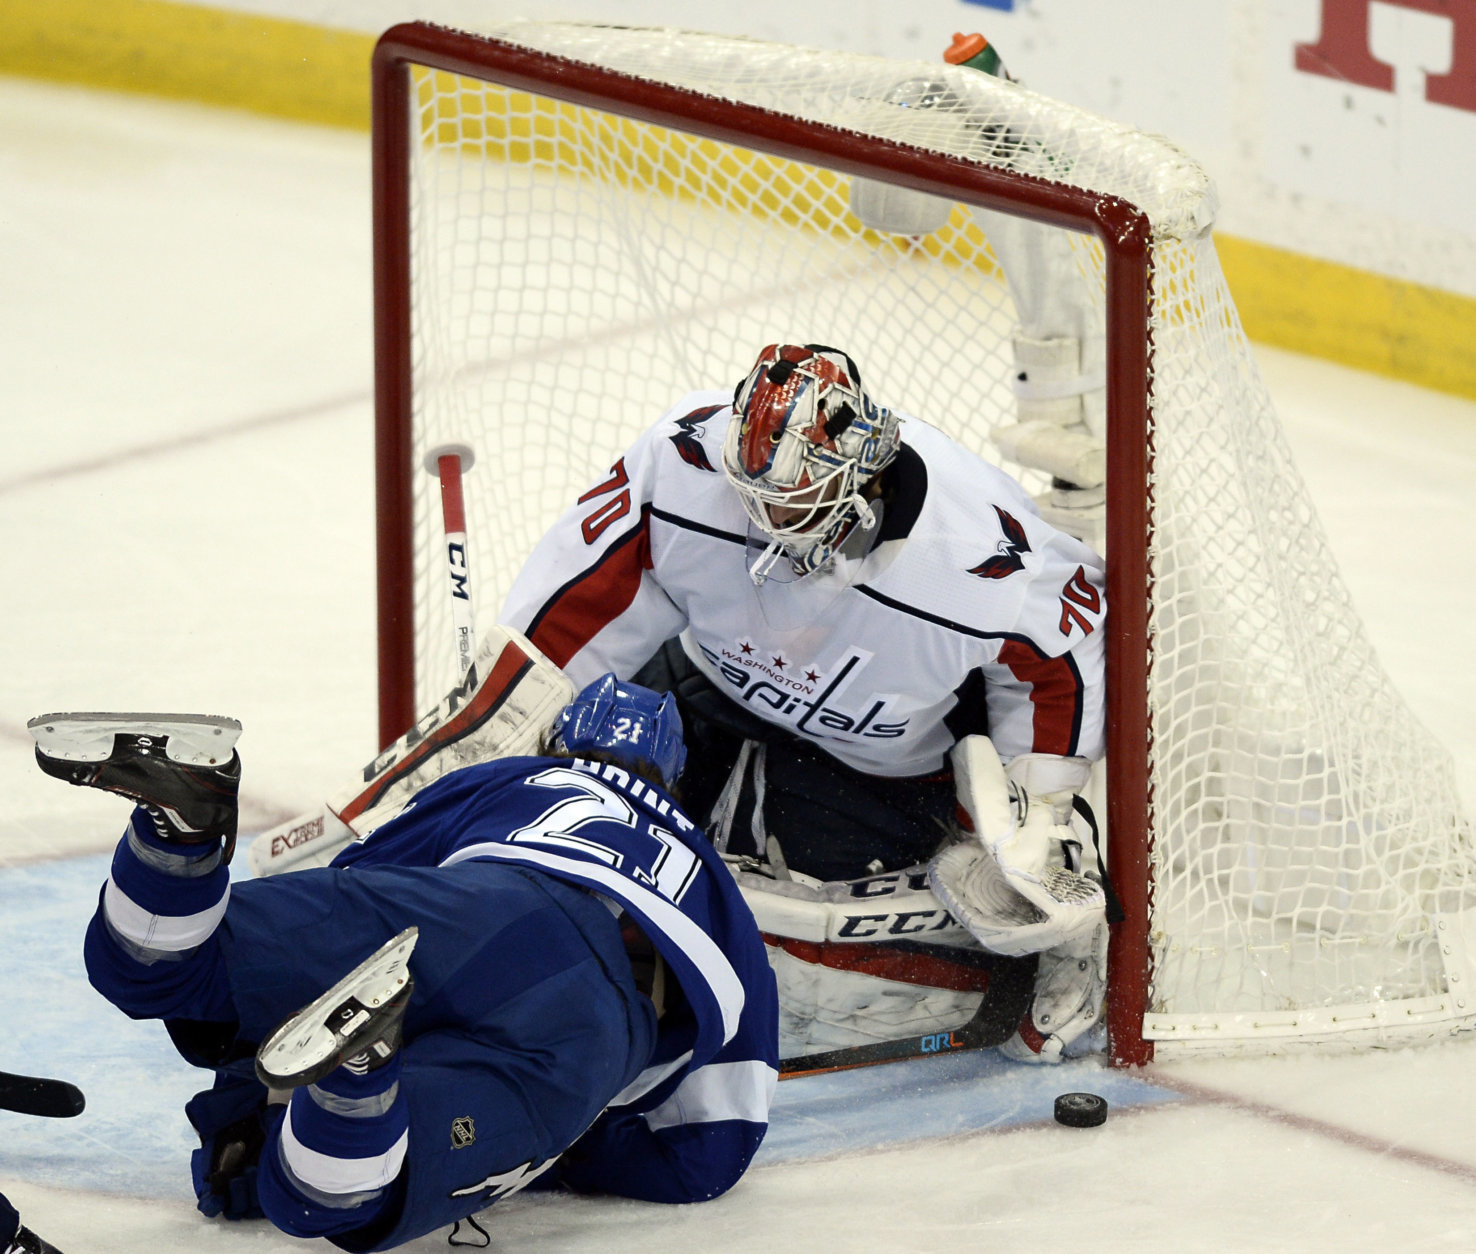 Tampa Bay Lightning center Brayden Point, left, falls in front of Washington Capitals goaltender Braden Holtby as he tries but fails to score during the second period of Game 7 of the NHL Eastern Conference finals hockey playoff series Wednesday, May 23, 2018, in Tampa, Fla. (AP Photo/Jason Behnken)